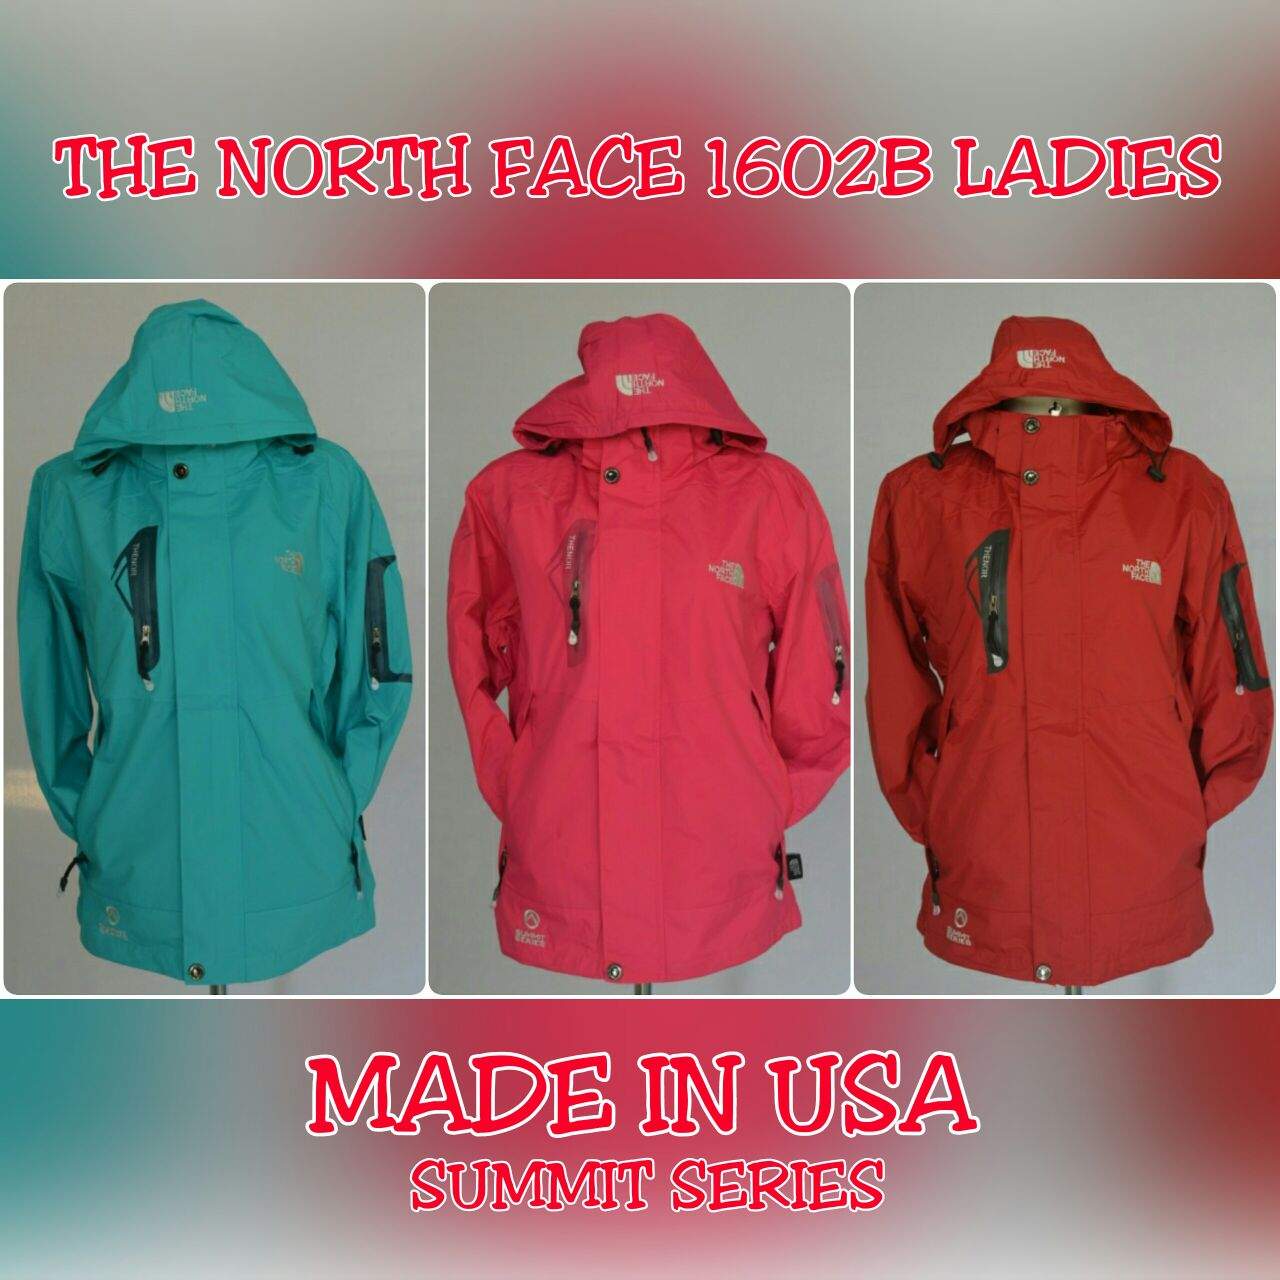 the north face 1602b ladies summit series promo jual jaket gunung import xrock store. Black Bedroom Furniture Sets. Home Design Ideas